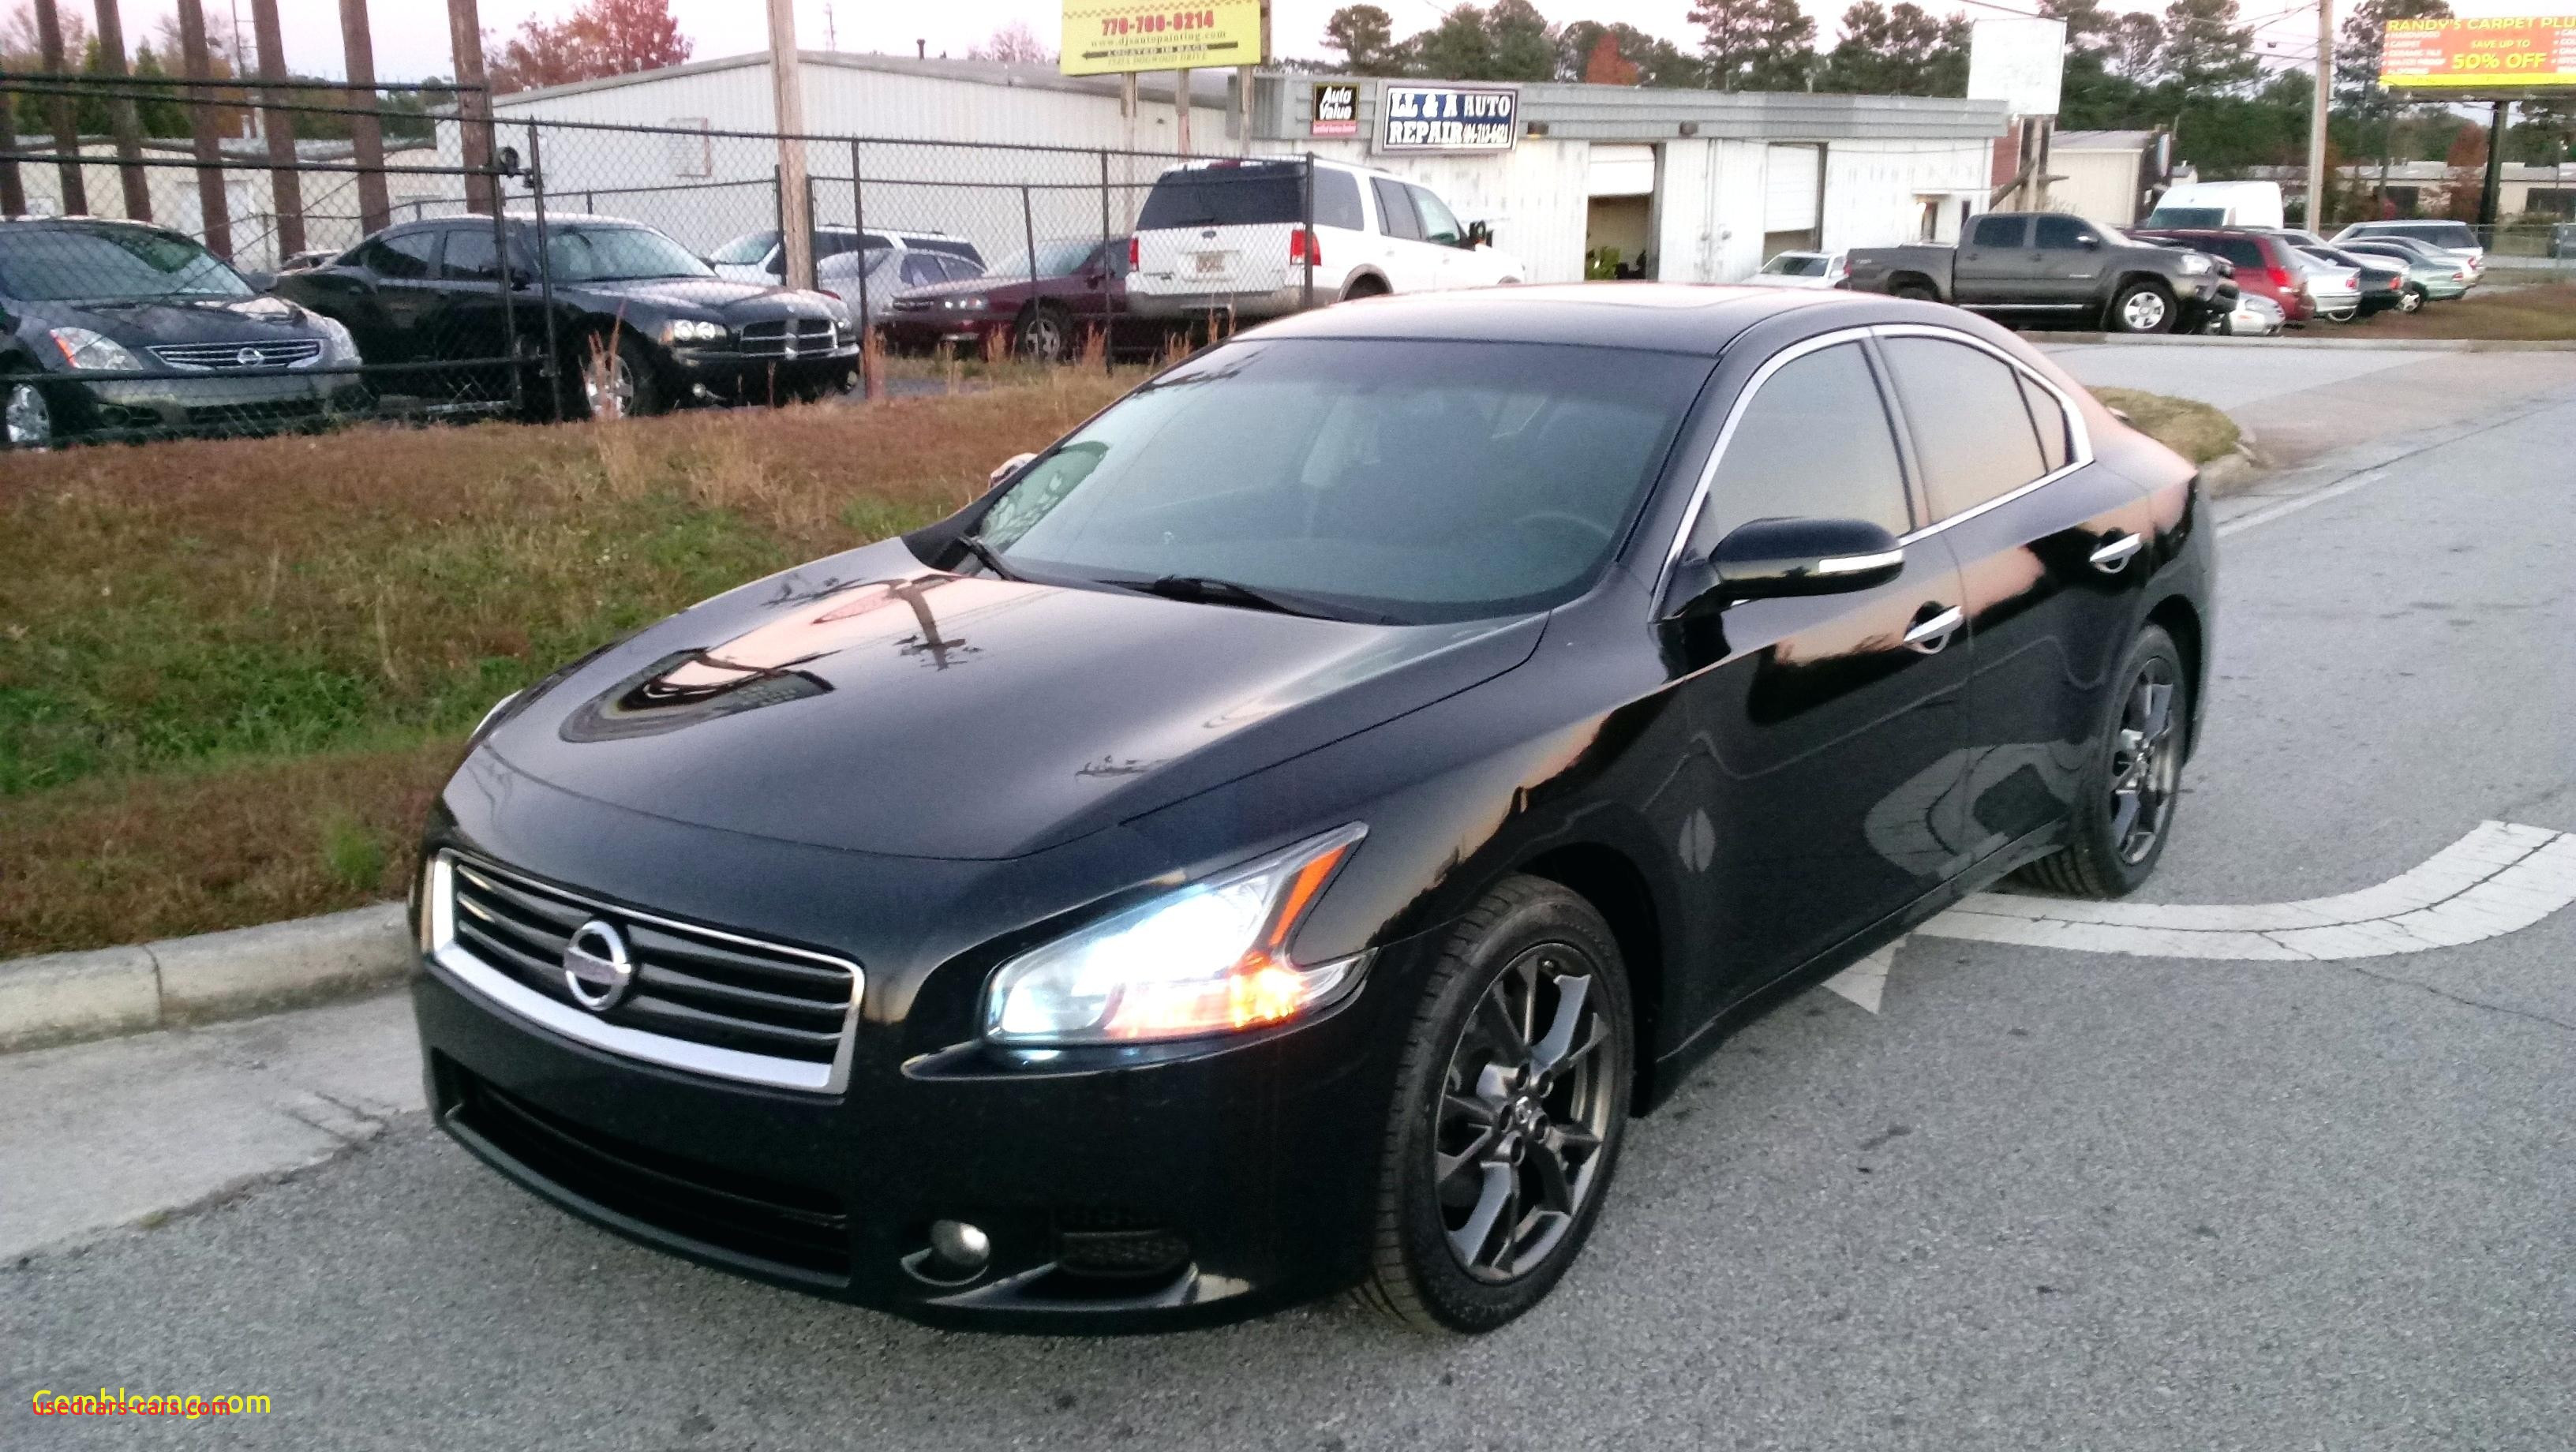 Used Cars for Sale $10000 by Owner Elegant New Car for Sale Under 1000